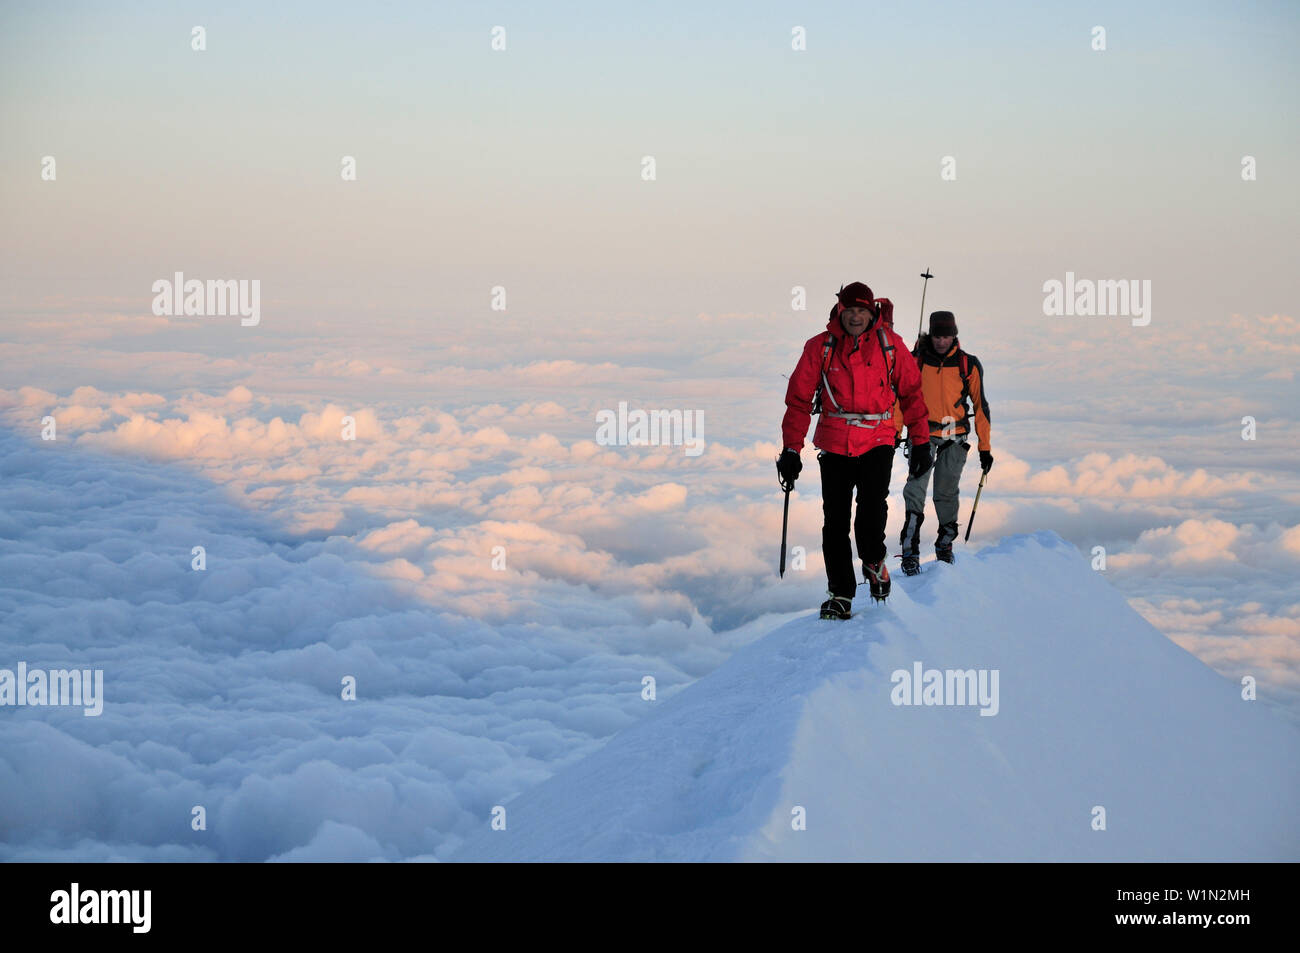 Mountaineers crossing the Aiguille de Bionnassay, Mont Blanc, France - Stock Image